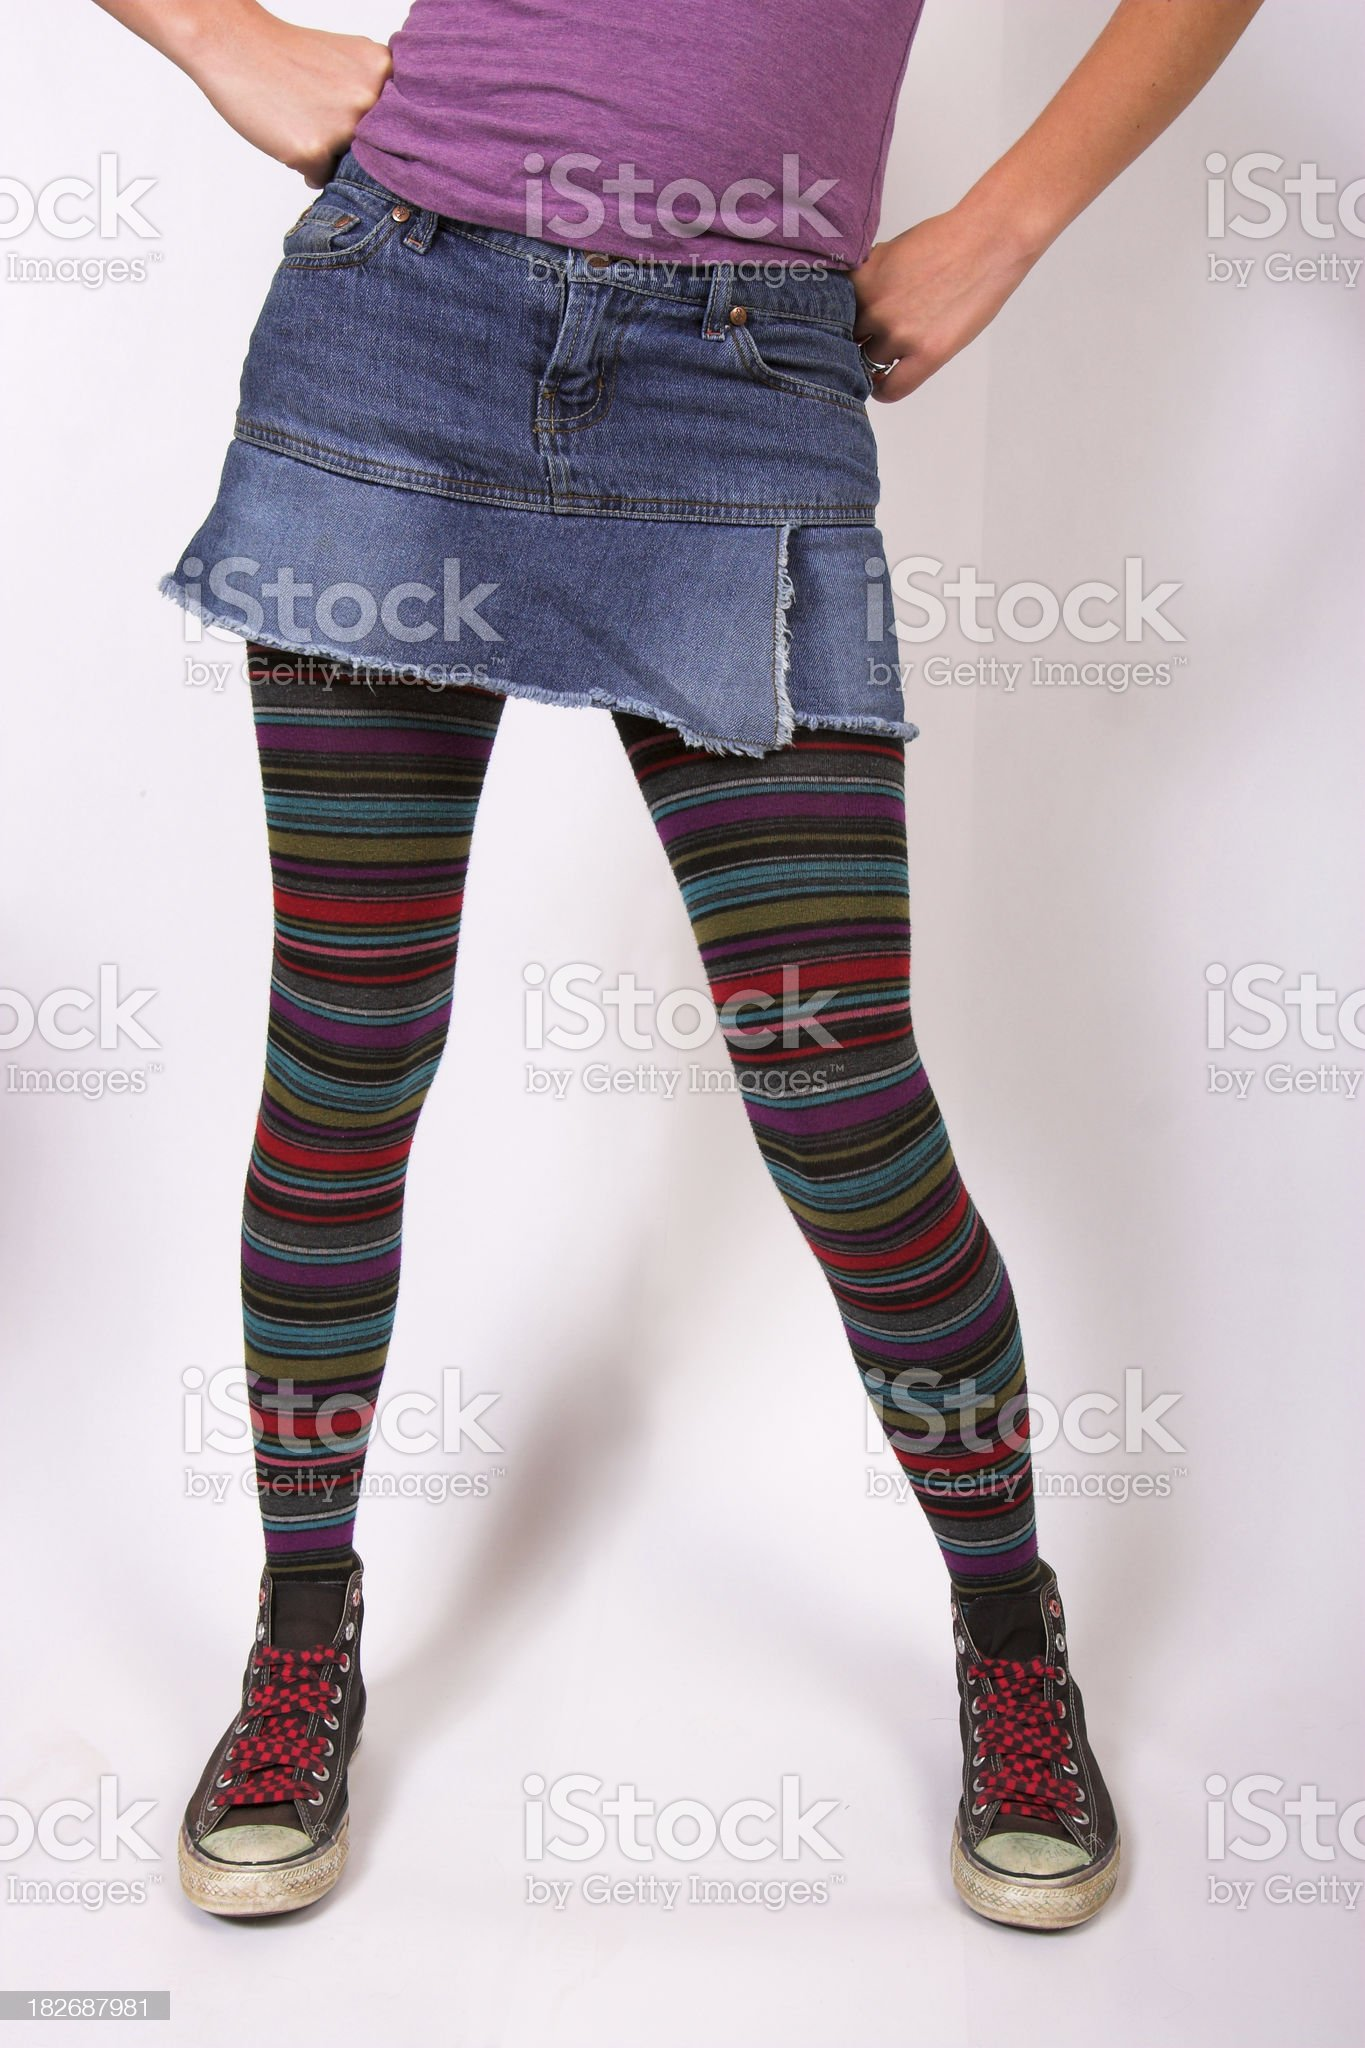 Colorful Legs royalty-free stock photo